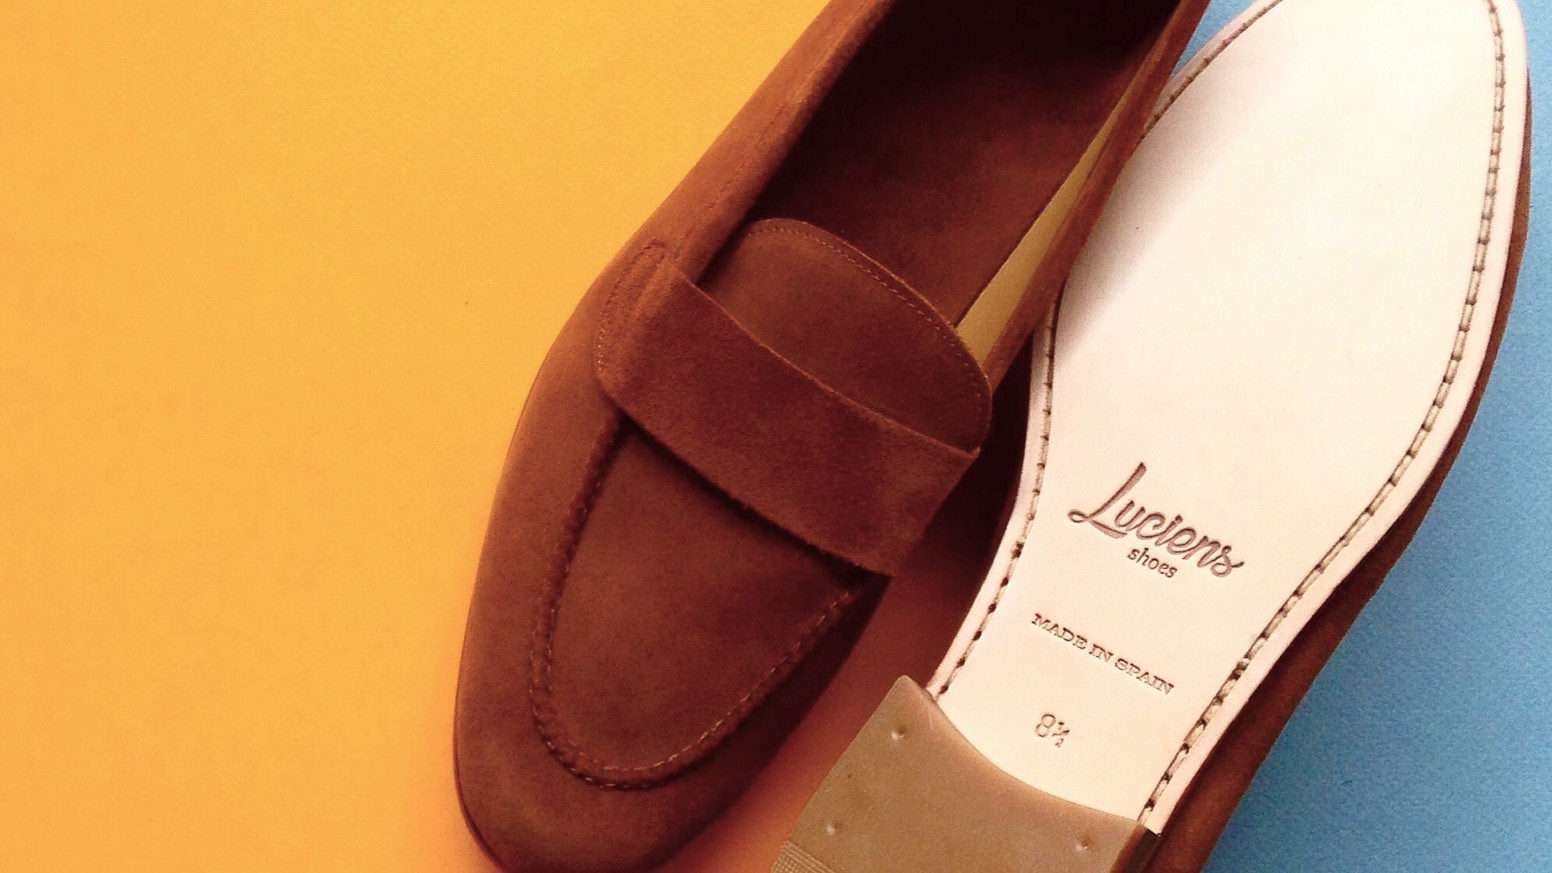 7700c5b5f4273 Luciens: Handcrafted Shoes by luciens — Kickstarter